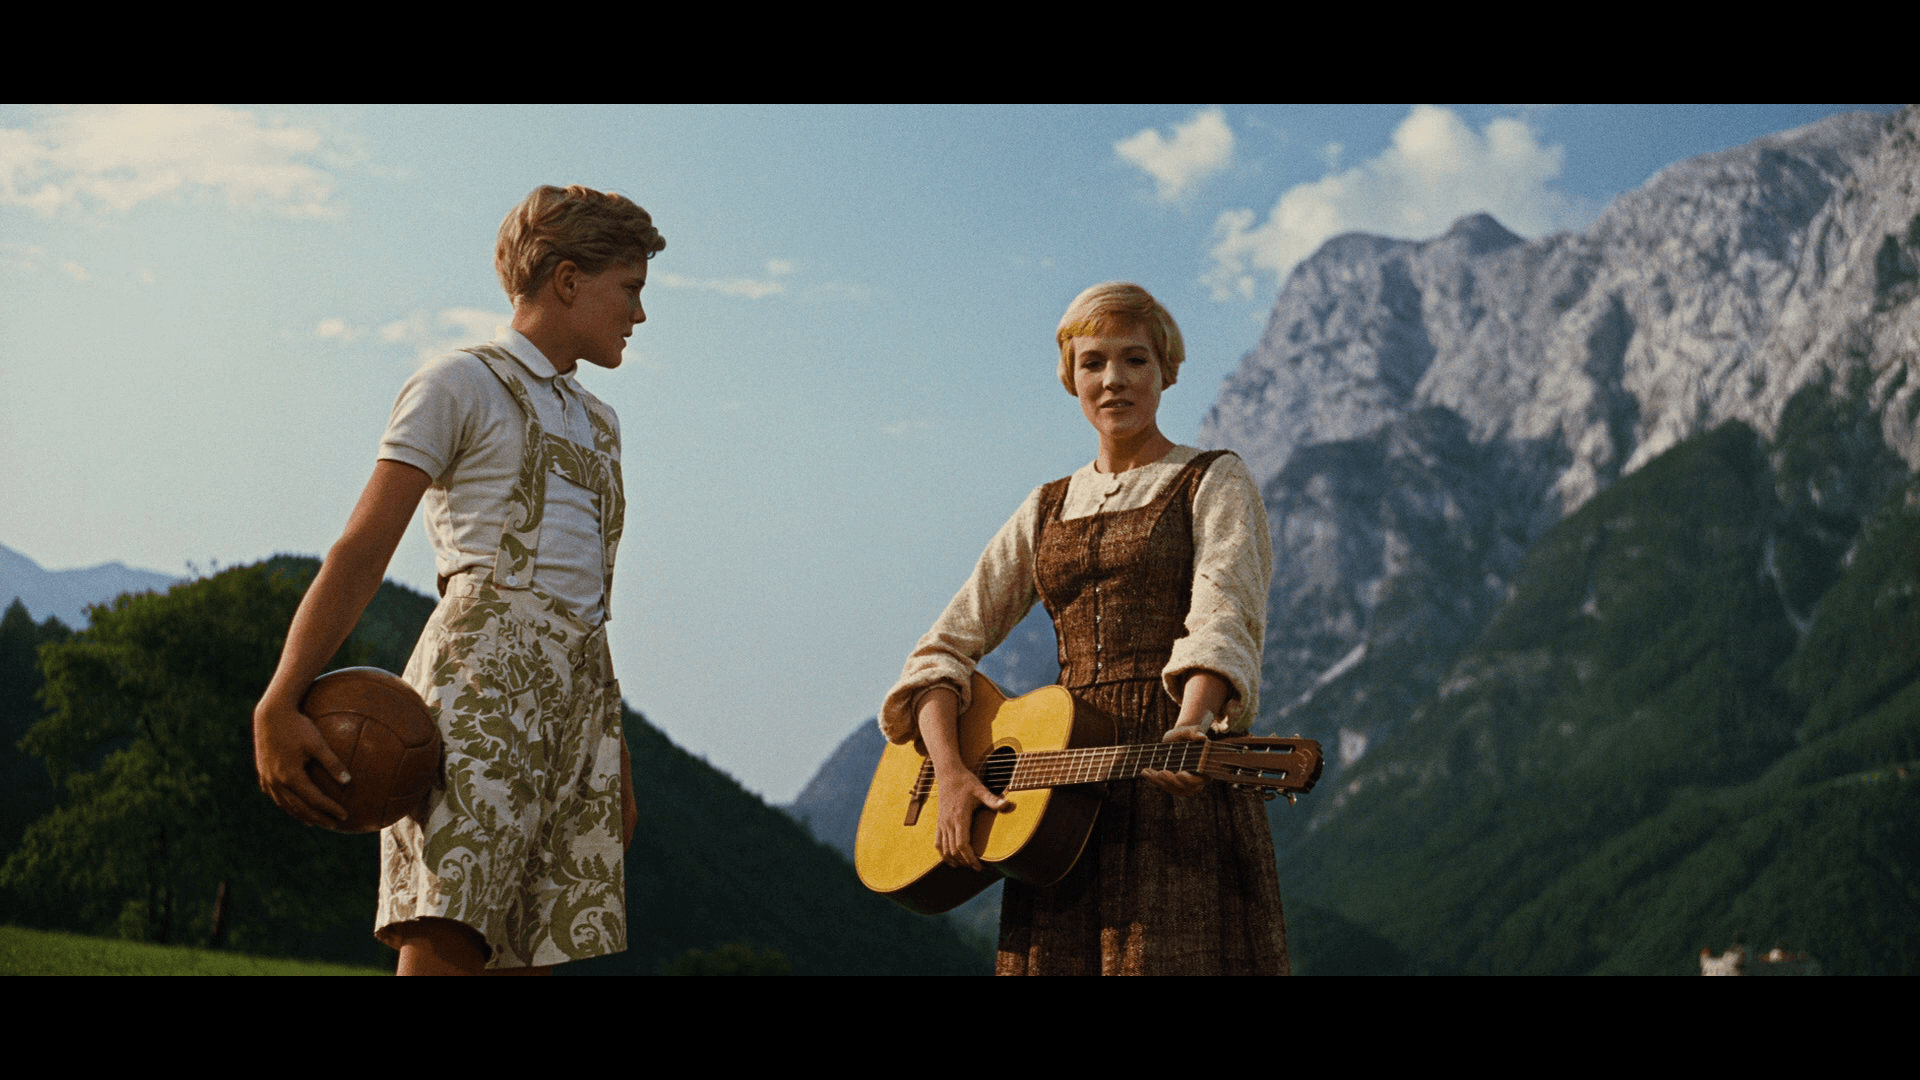 The Sound Of Music Wallpapers 14